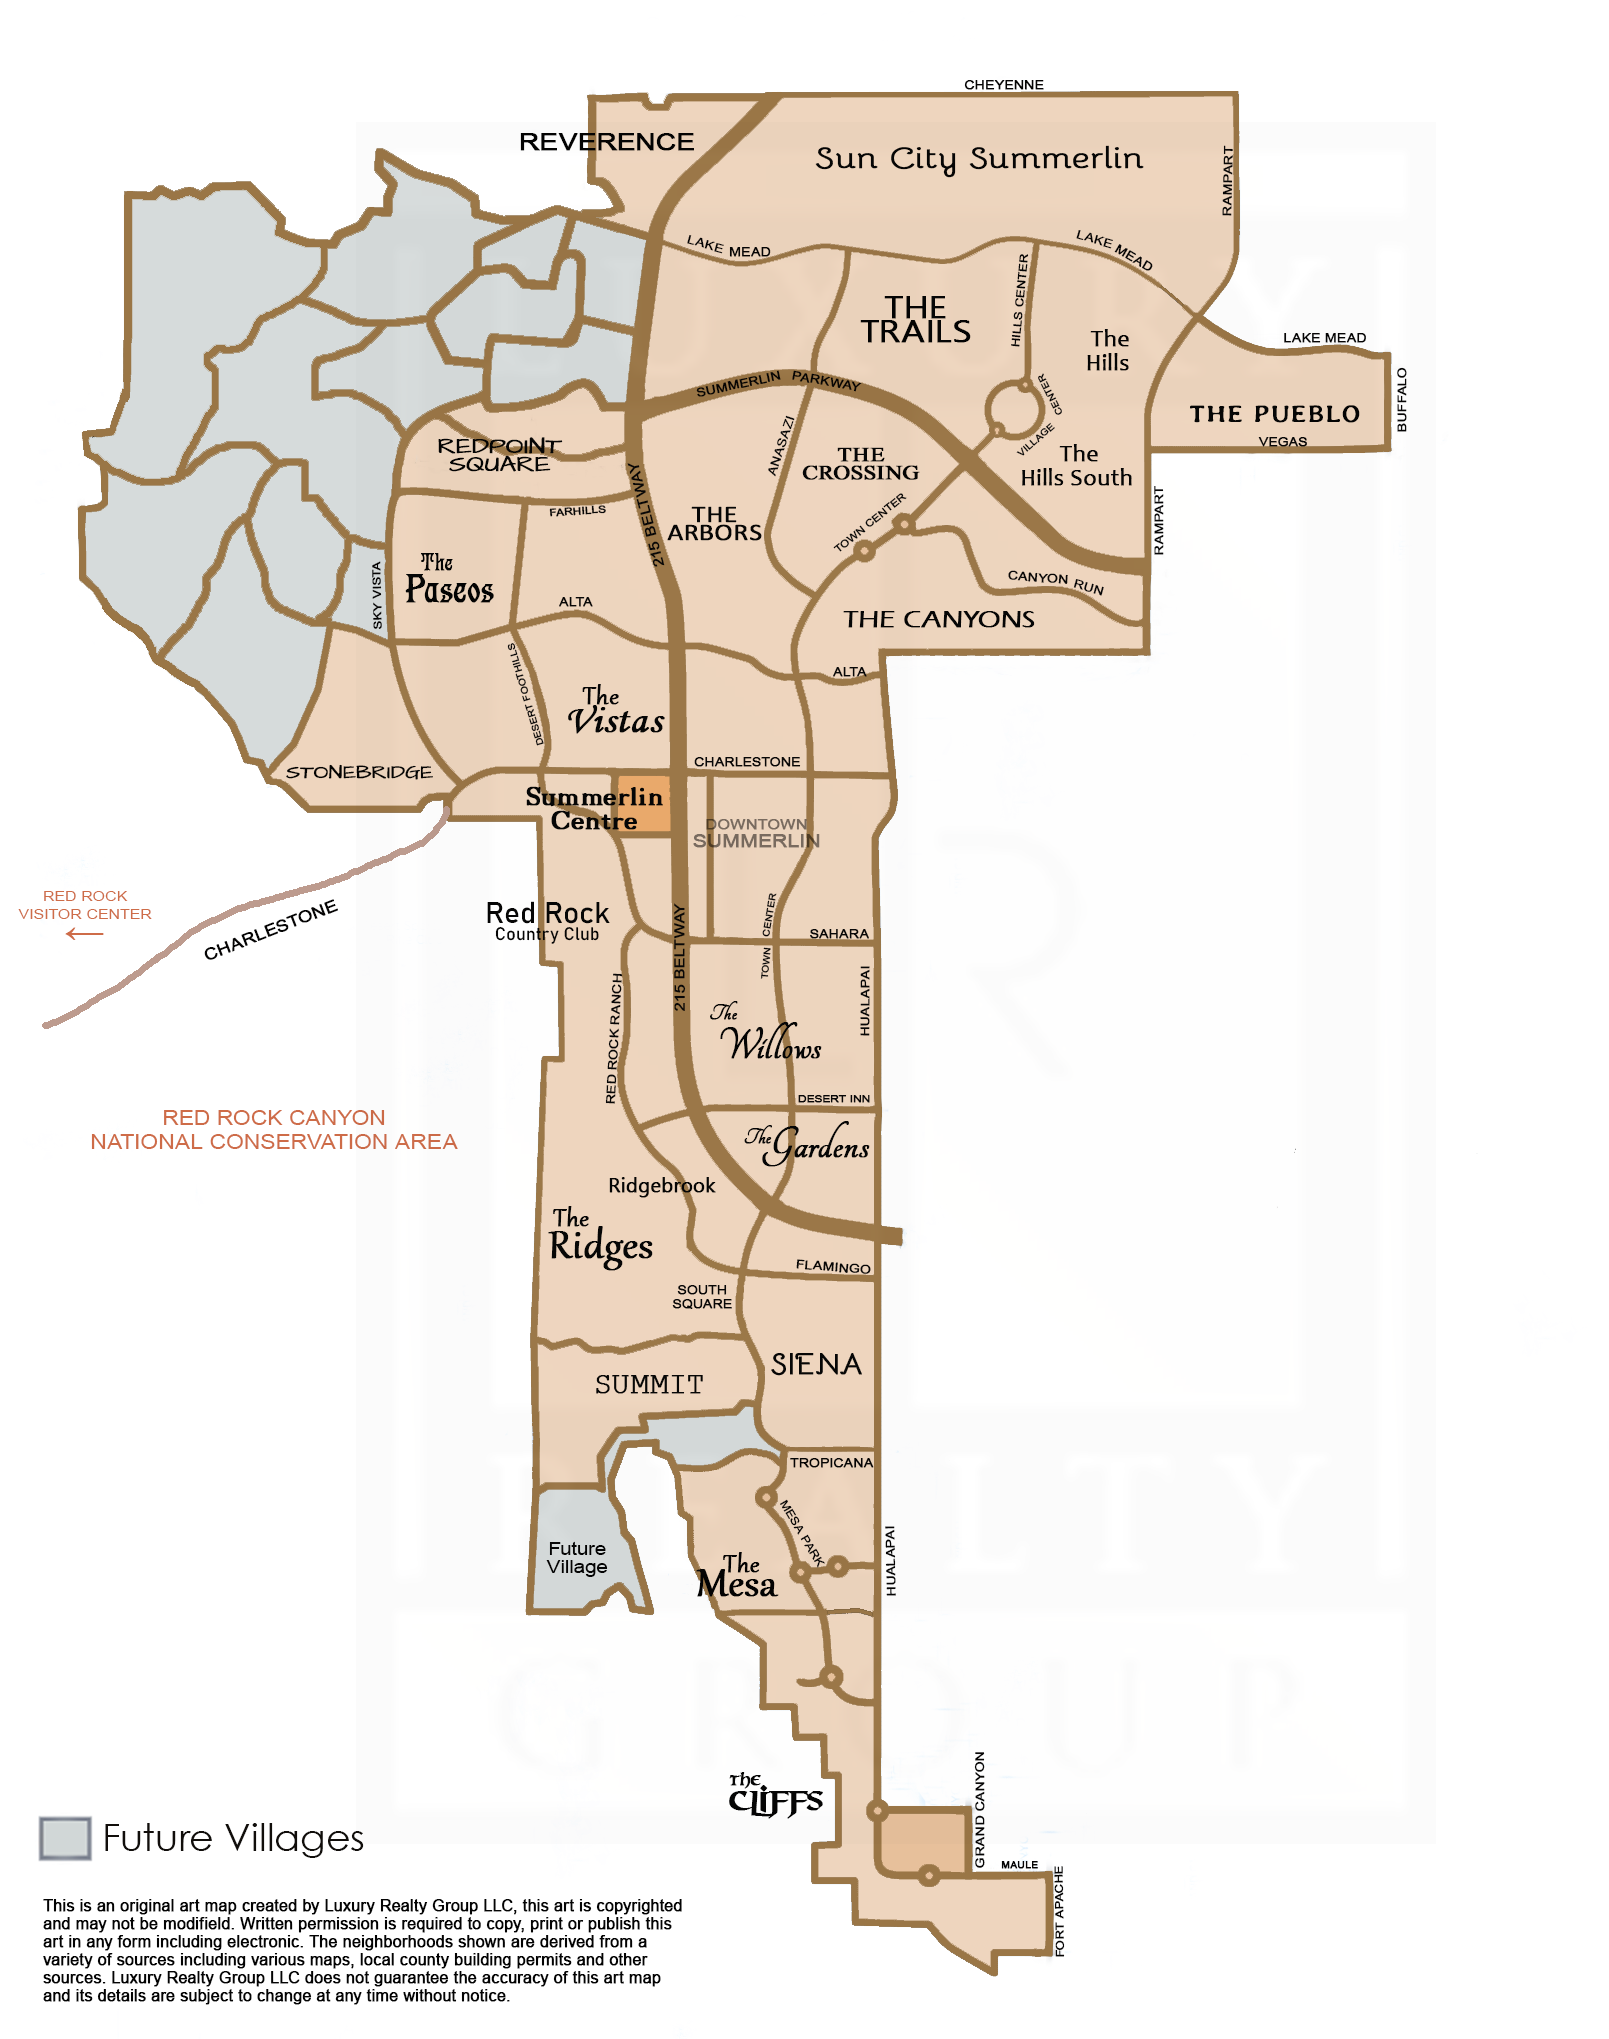 Summerlin Border Map by Luxury Realty Group LLC FINAL